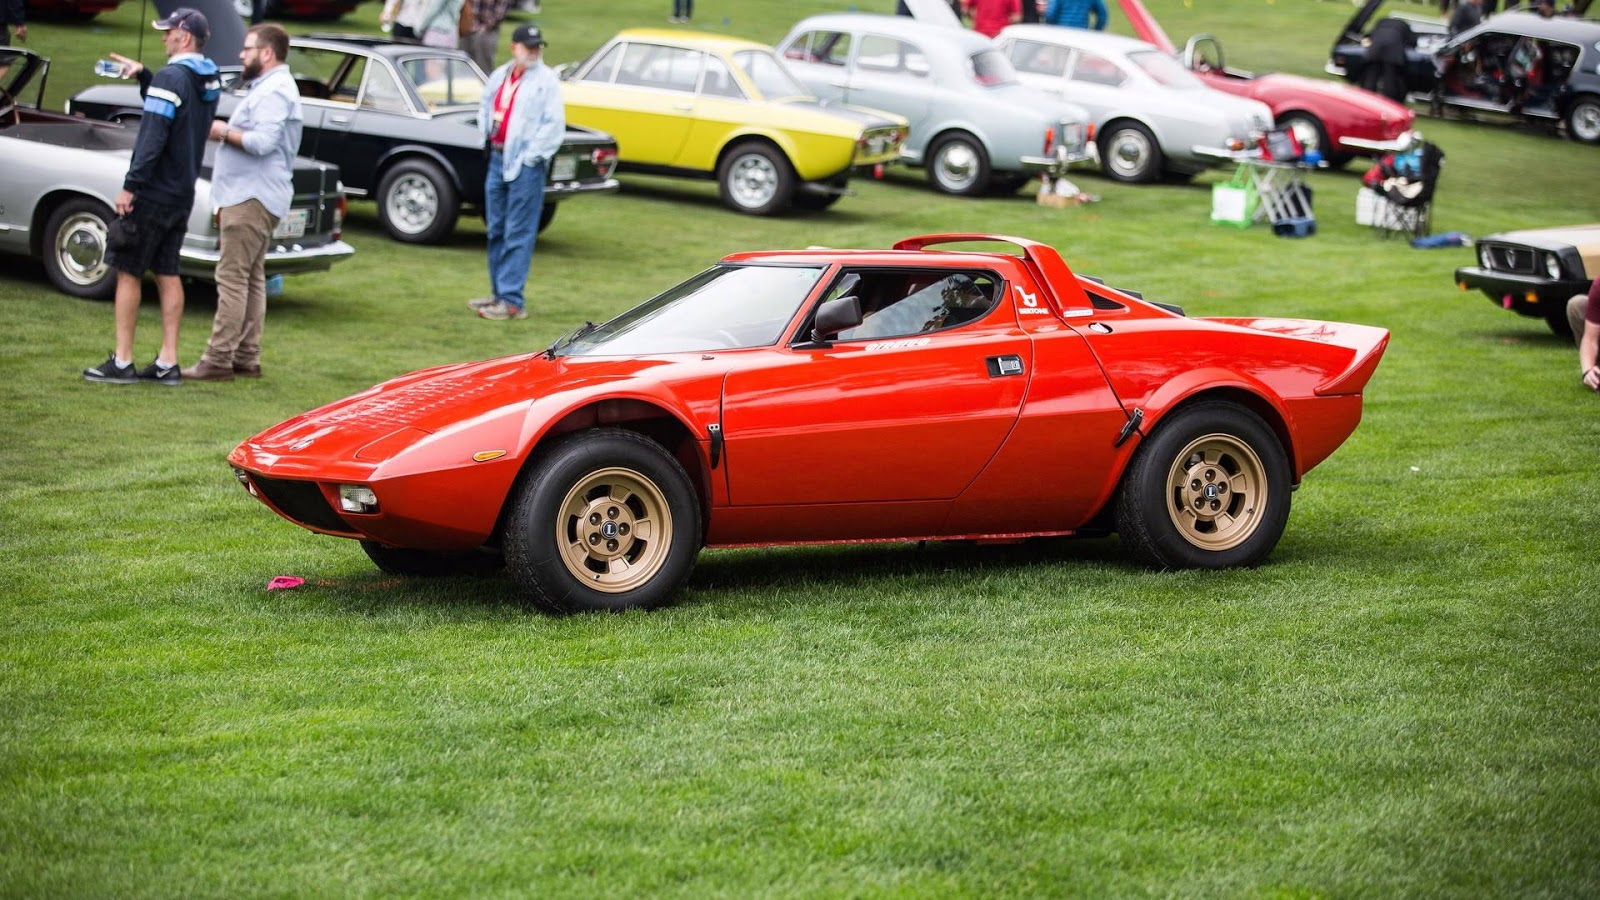 1974 lancia stratos hf stradale is a rare and pricey italian legend carscoops. Black Bedroom Furniture Sets. Home Design Ideas